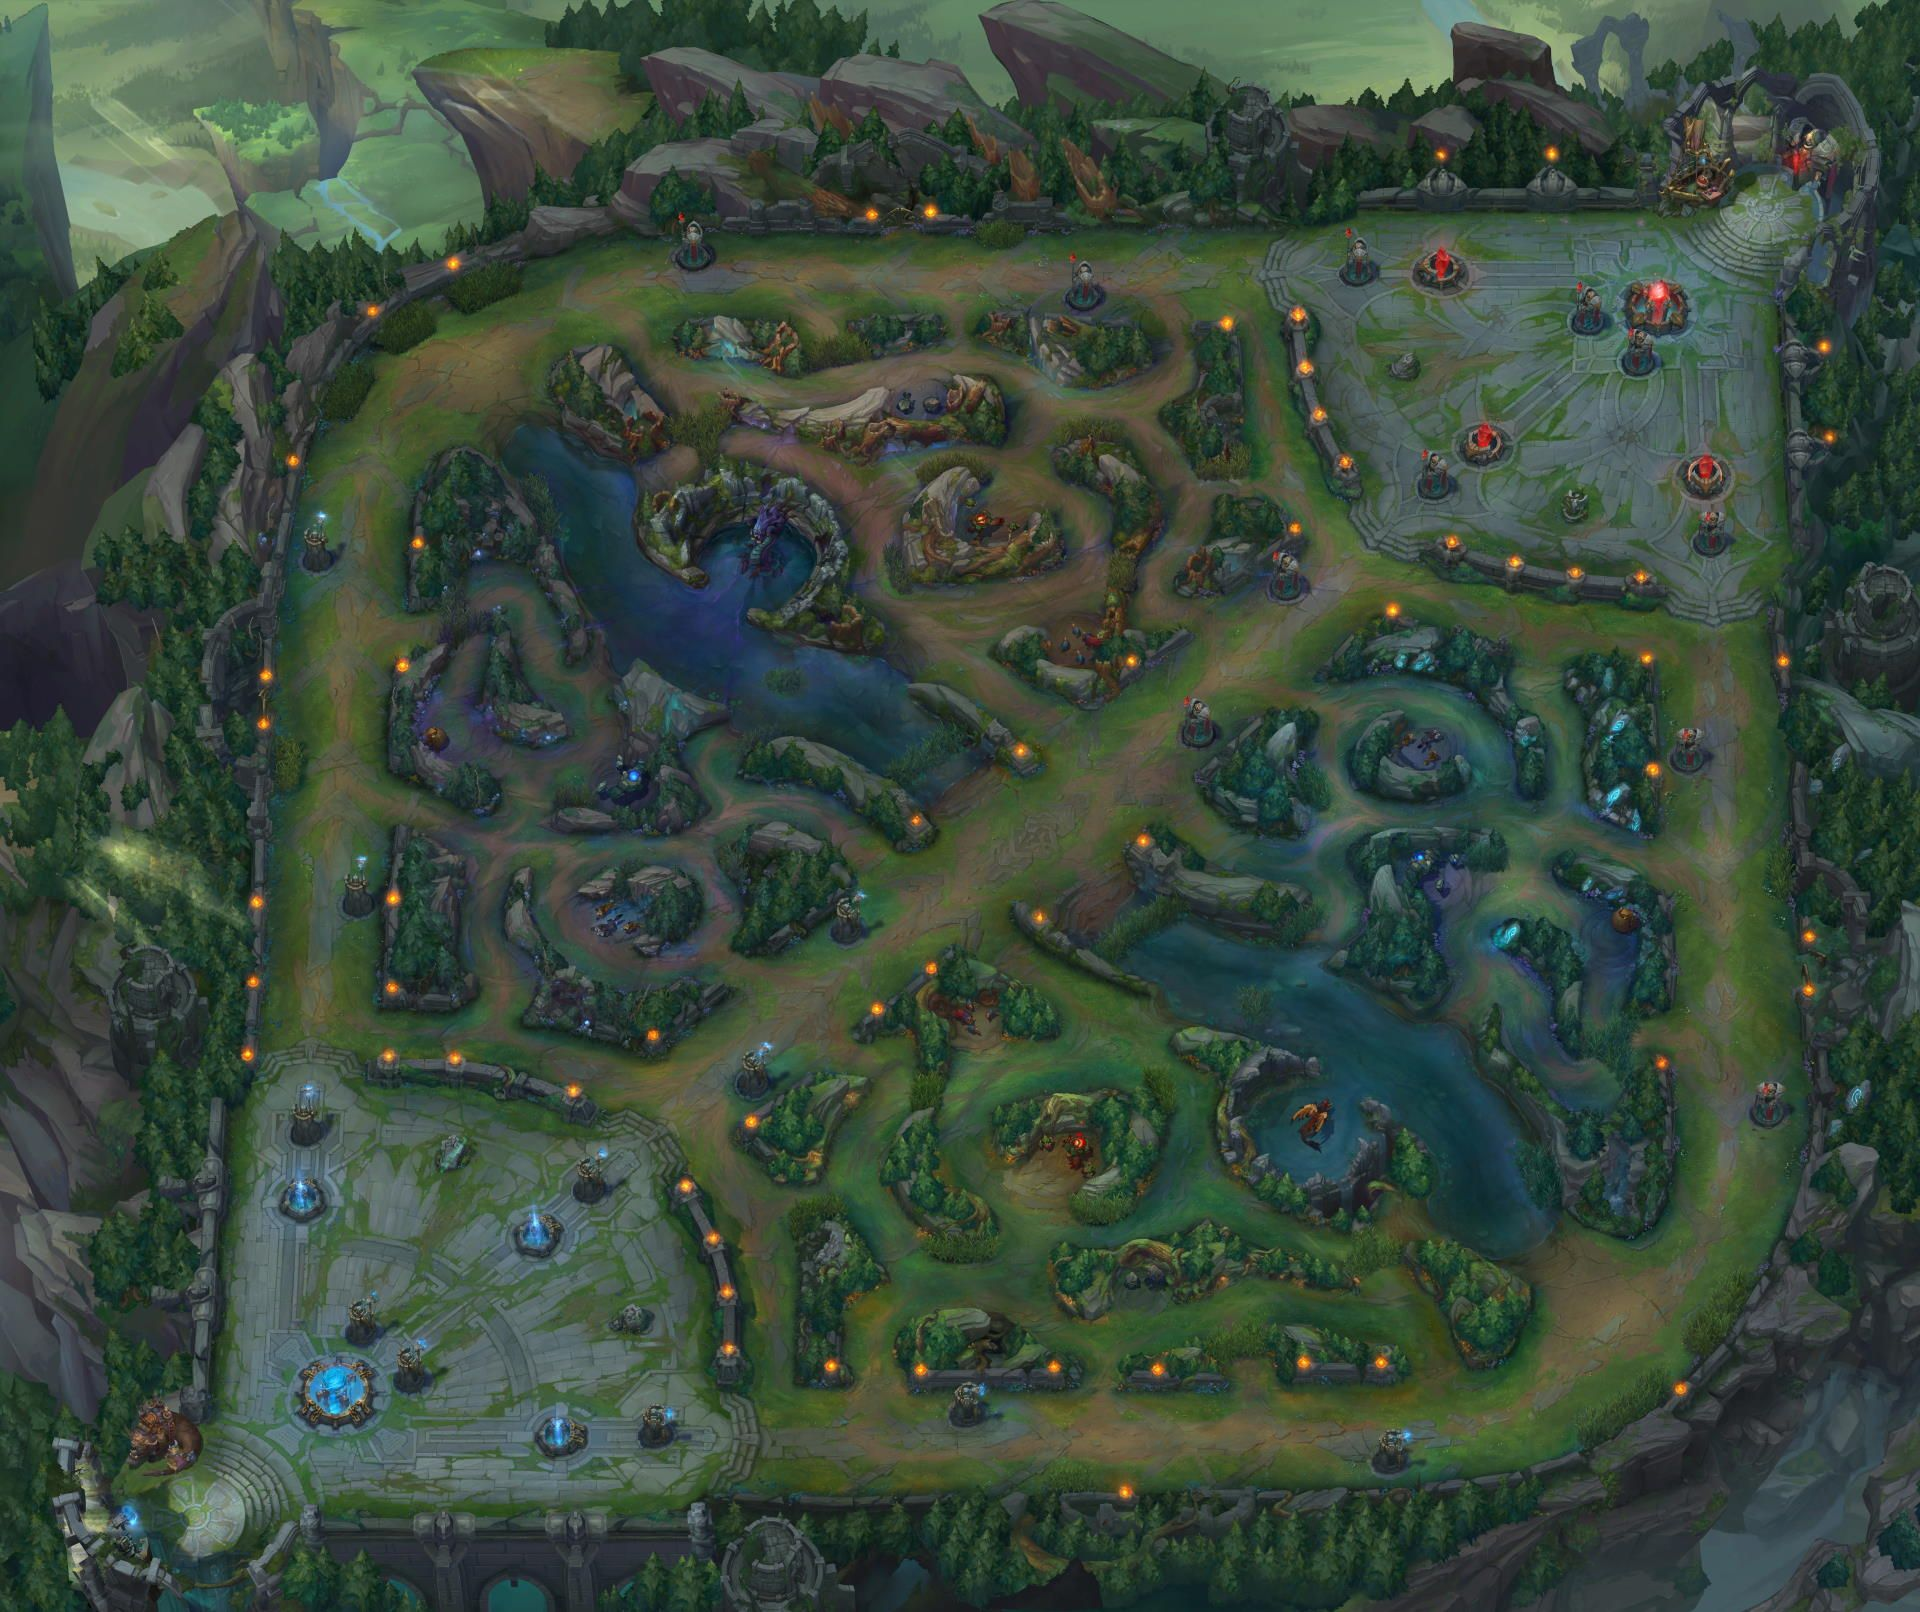 Bird's view of the Summoner's Rift in League of Legends